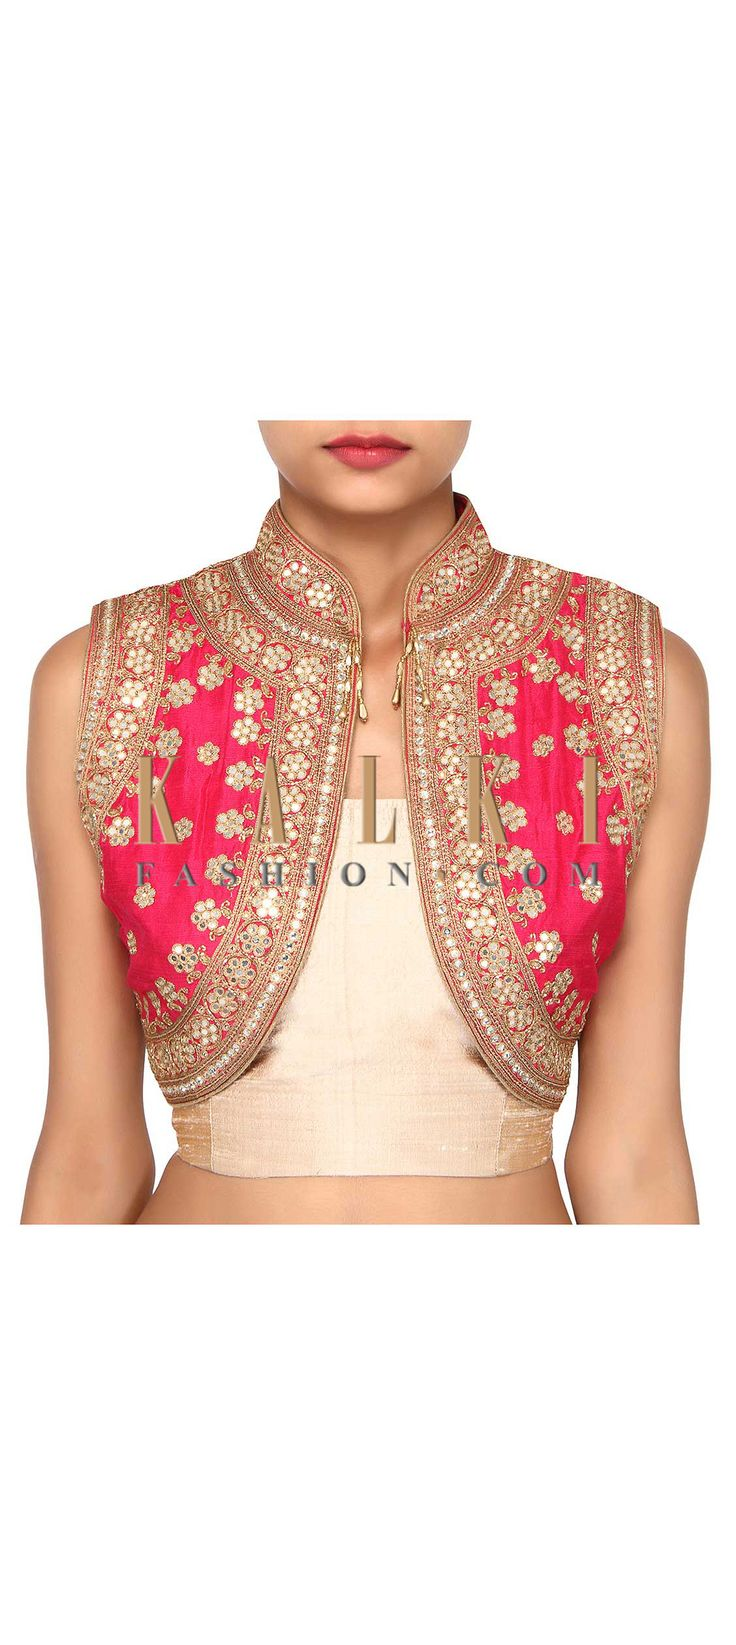 Buy Online from the link below. We ship worldwide (Free Shipping over US$100). Product SKU - 275667. Product Link - http://www.kalkifashion.com/pink-shrug-features-with-mirror-embroidery-only-on-kalki.html